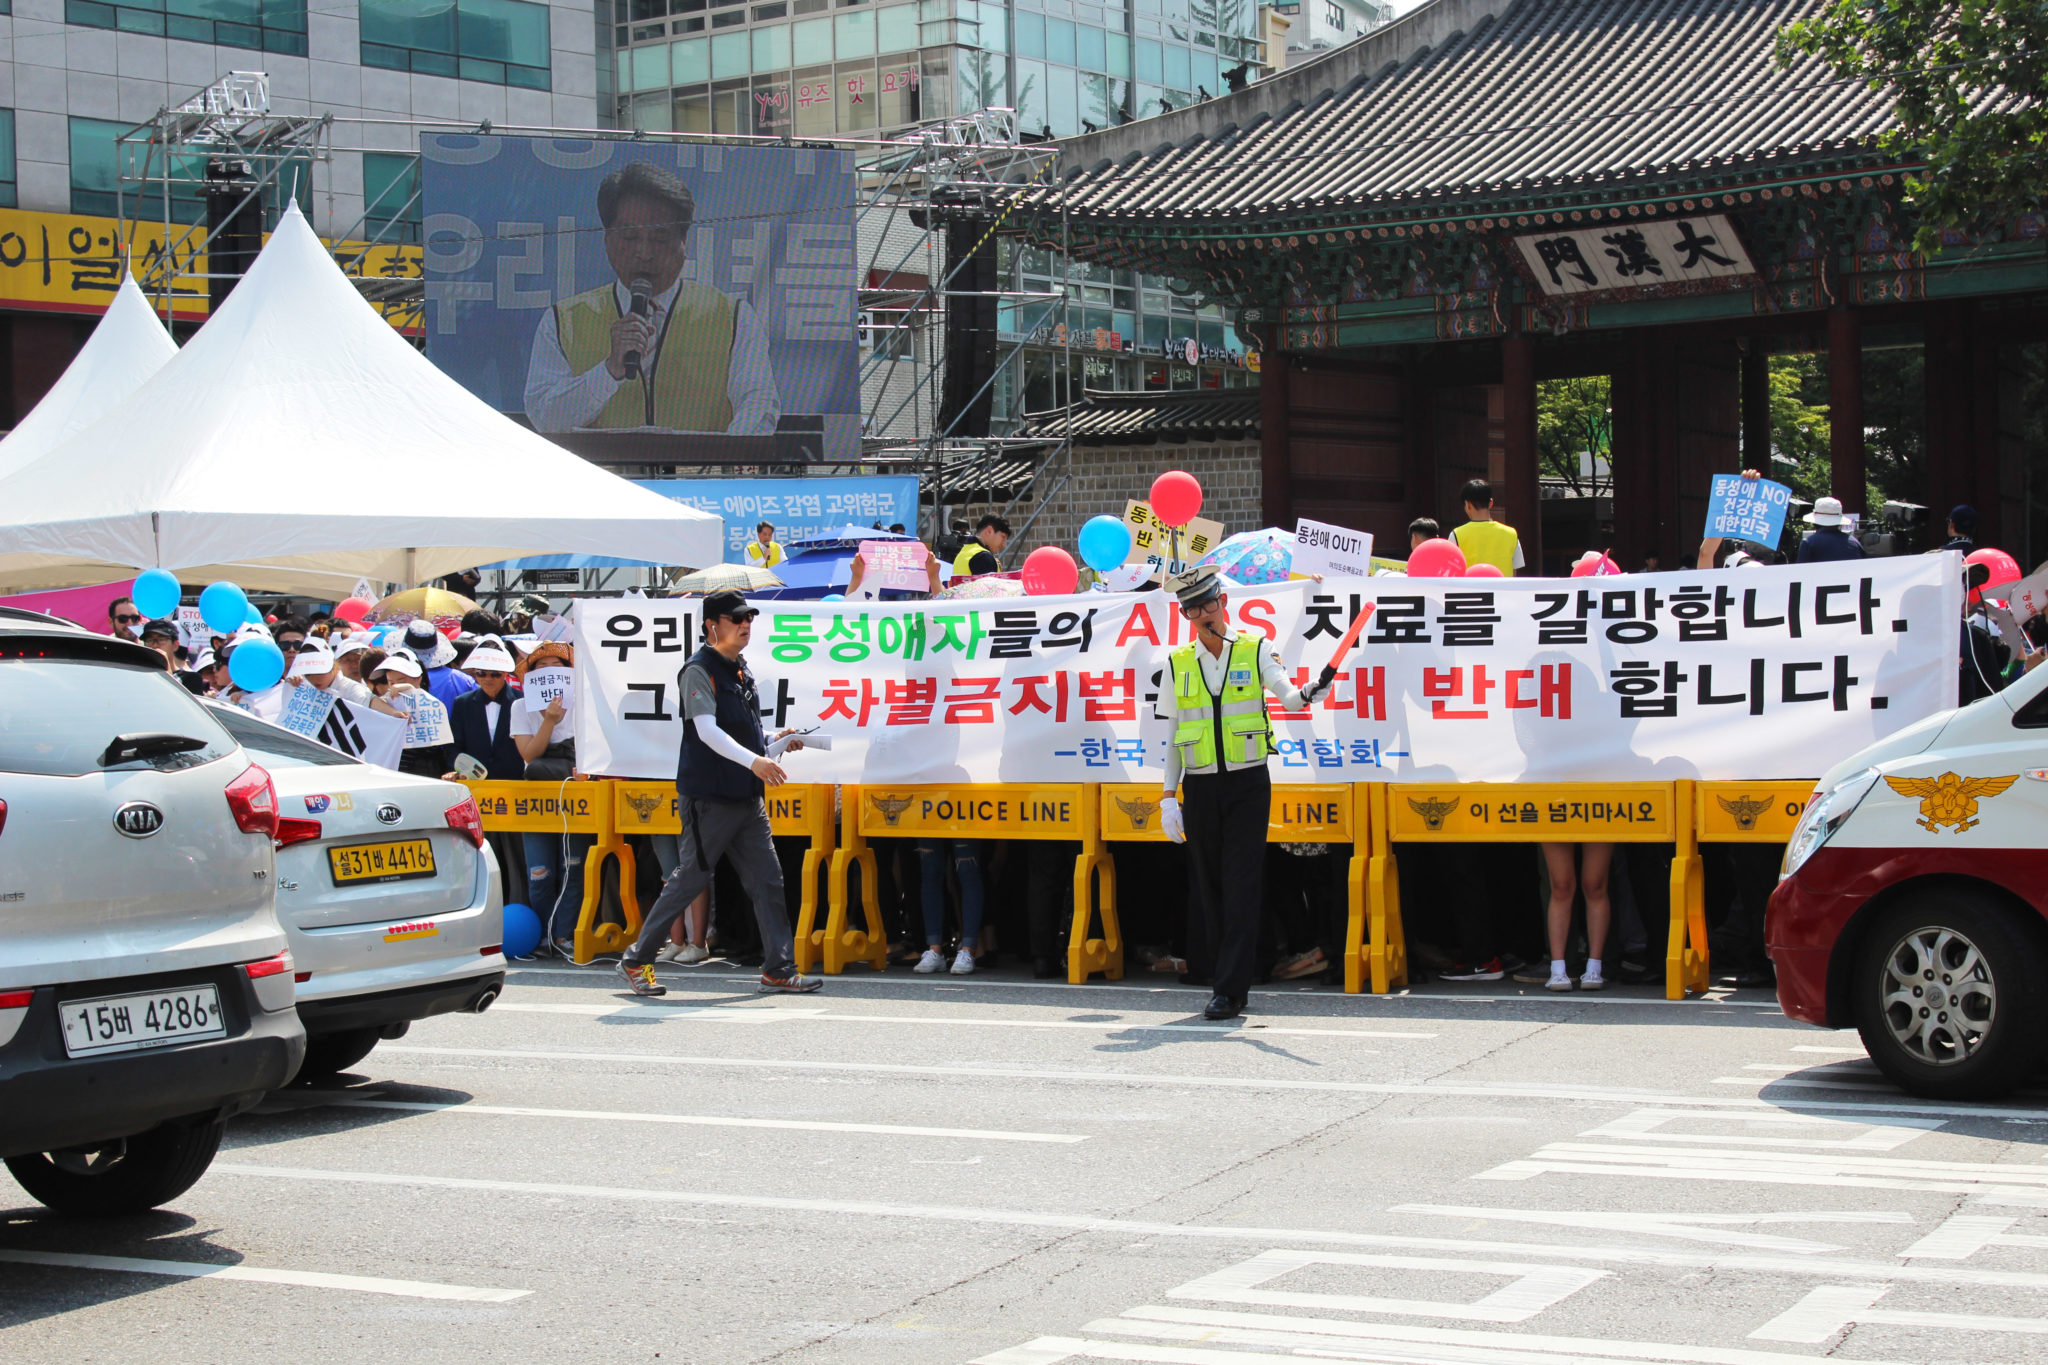 seoul pride photo essay policy forum image by mariam koslay